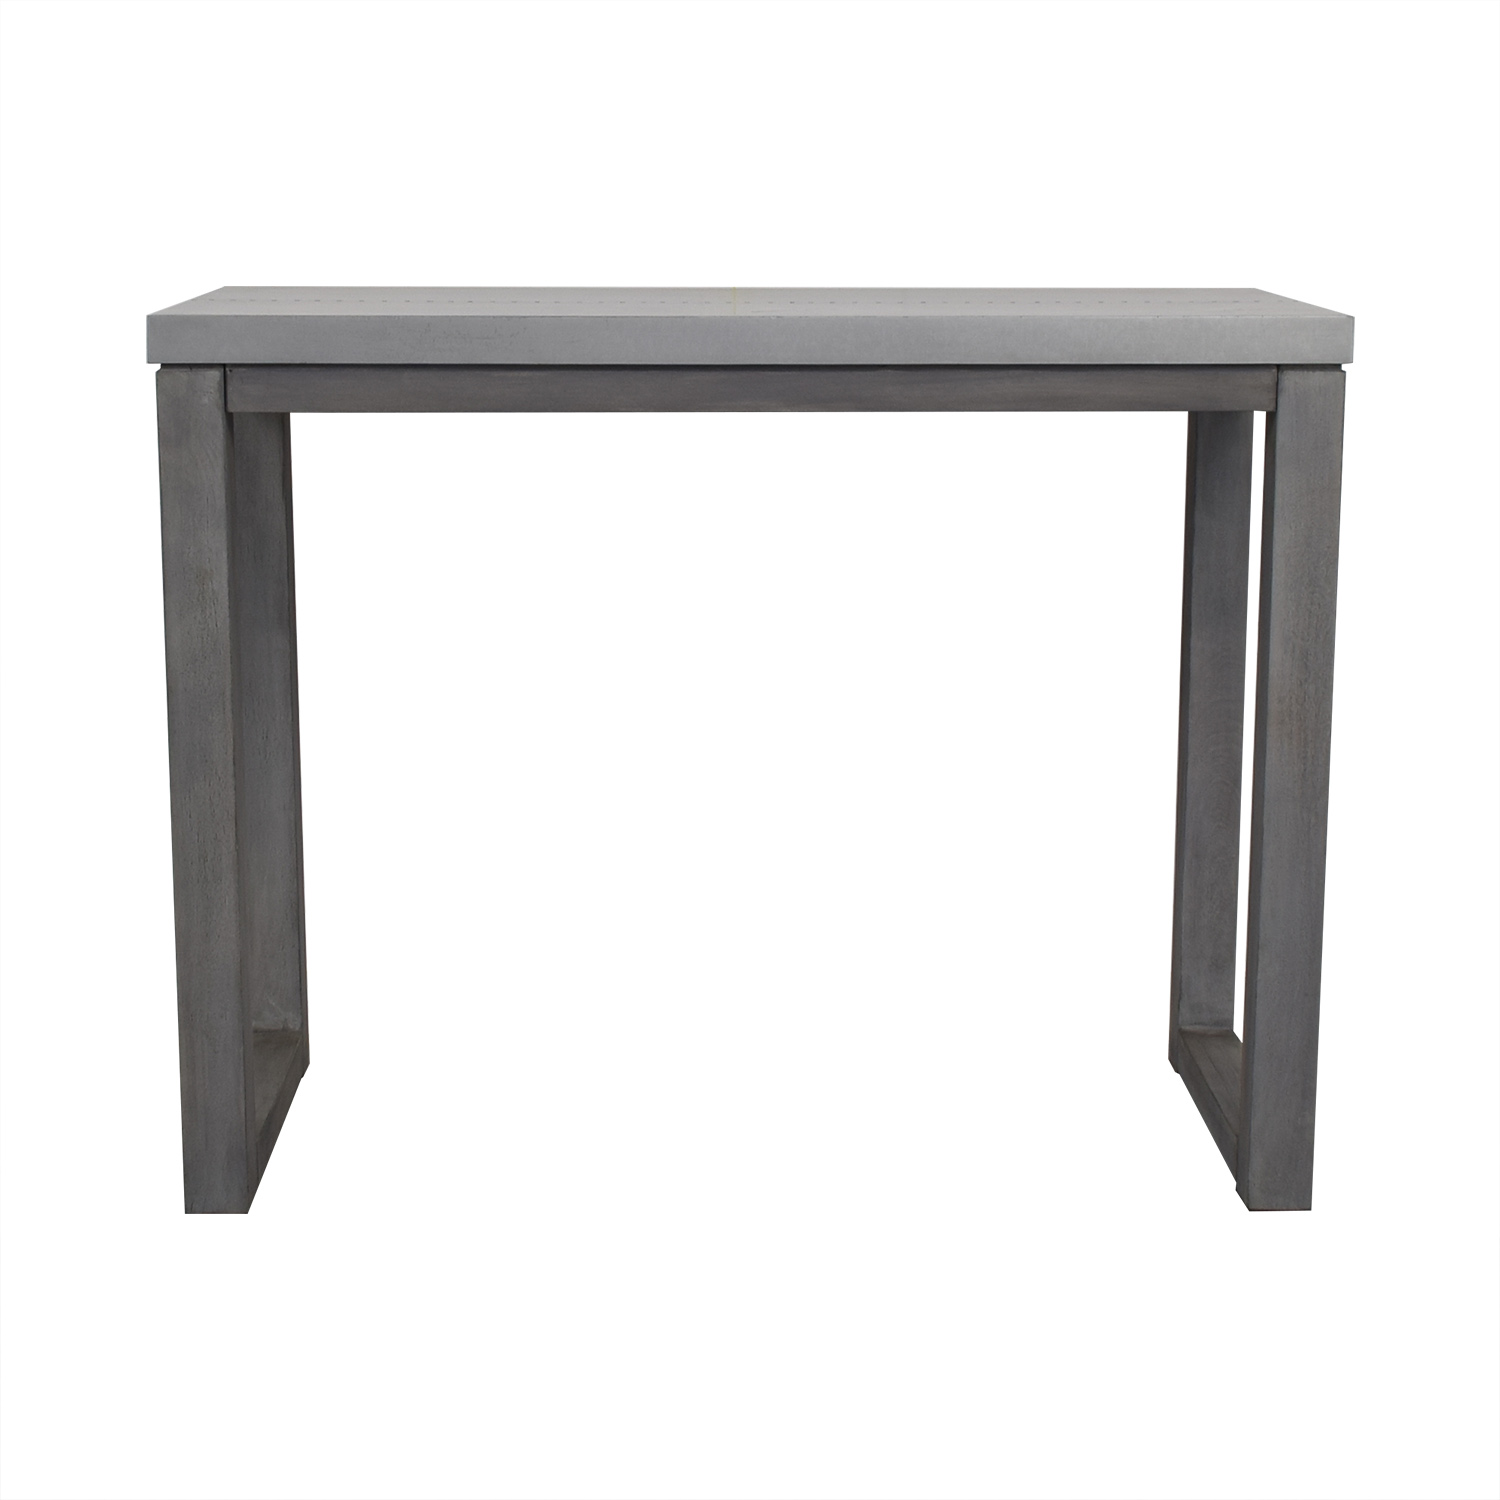 CB2 CB2 Stern Counter Table discount